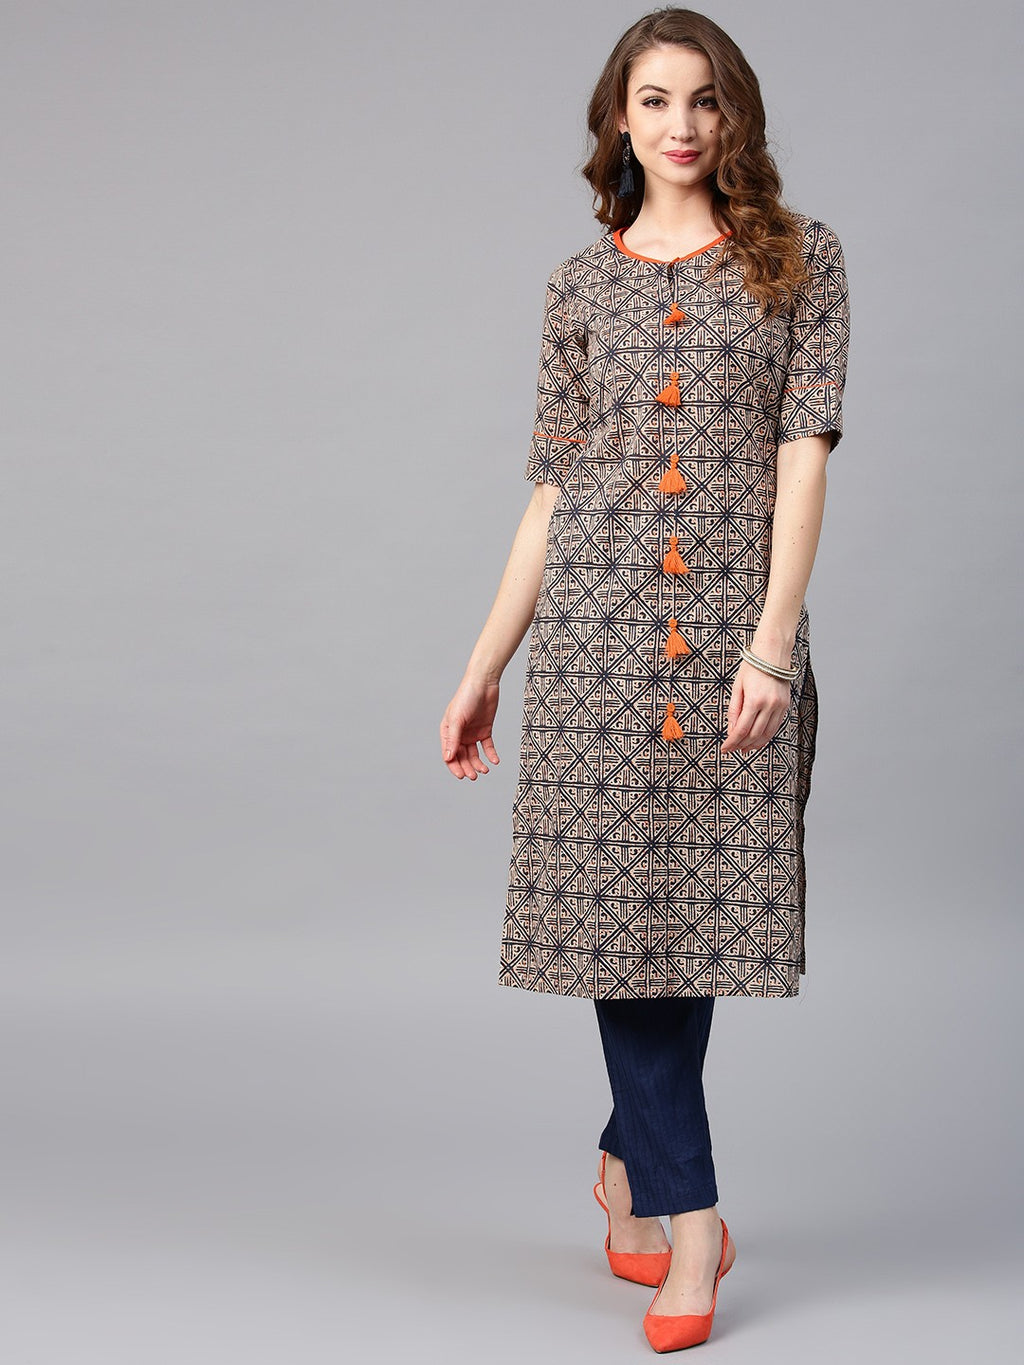 Beige & Blue Printed Straight Kurta (Fully Stitched) | Znx4ever.com